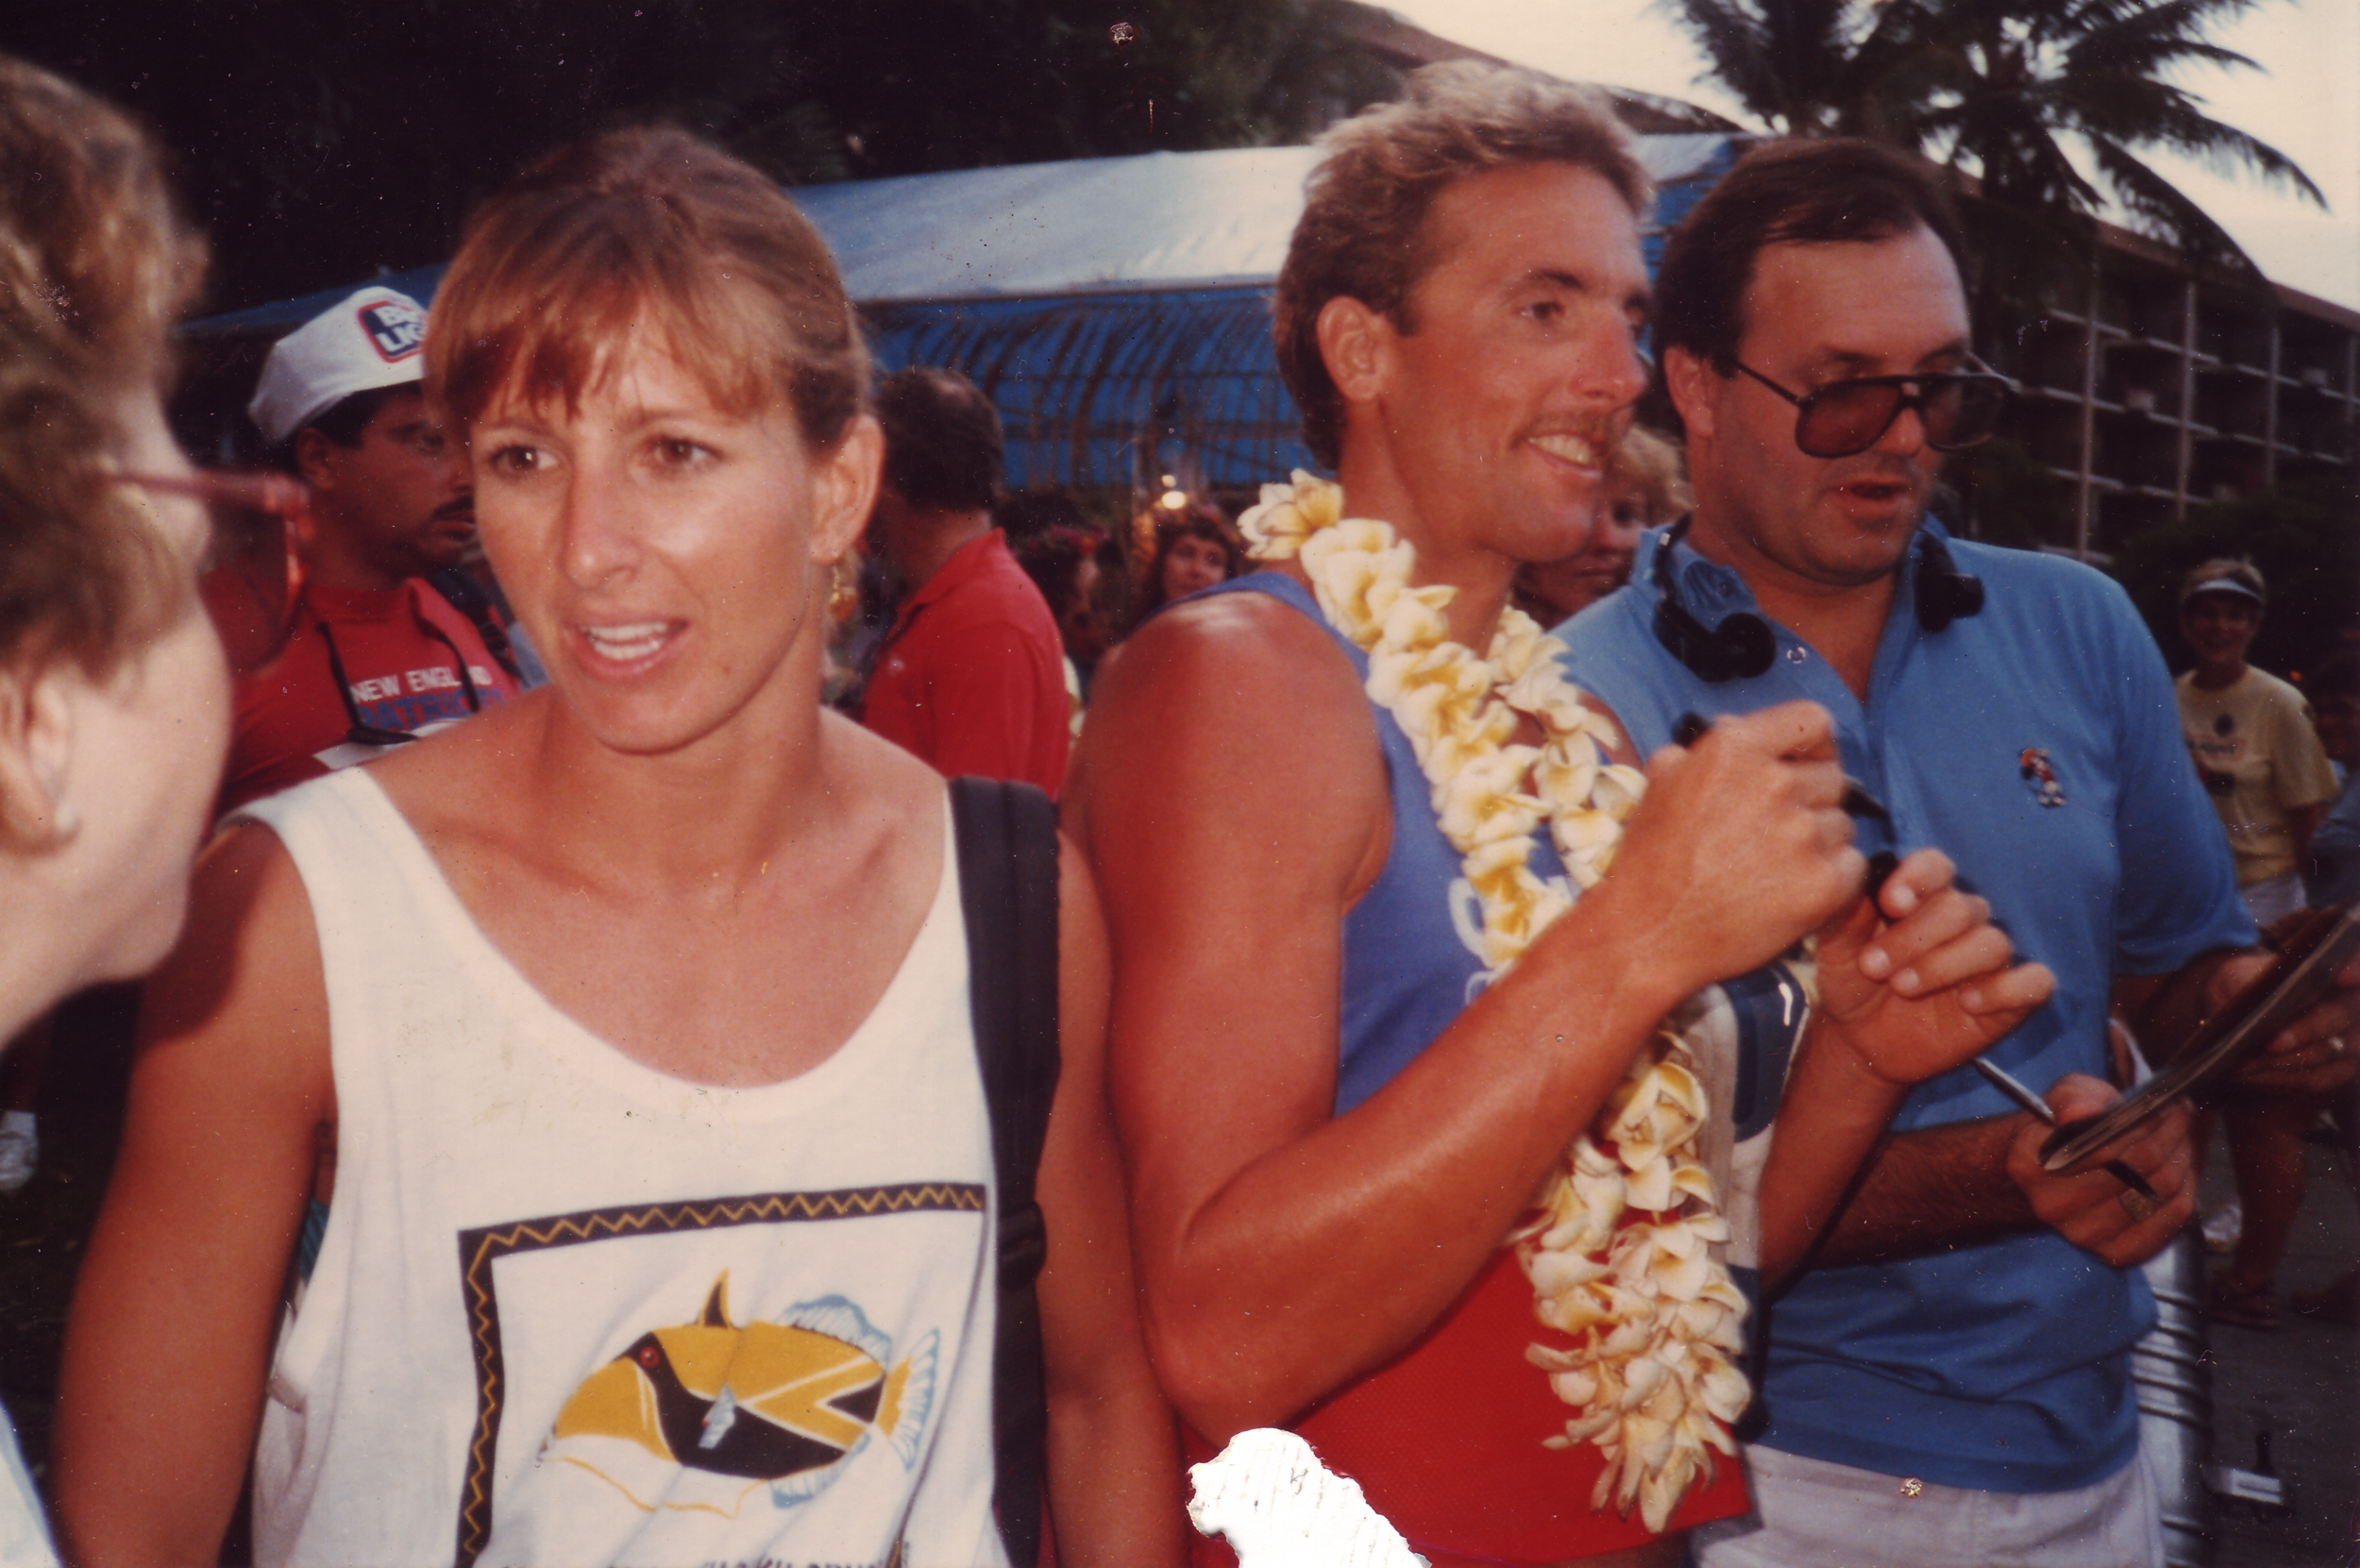 Six-time Ironman world champion Dave Scott and his wife at the finish of the 1985 Ironman.